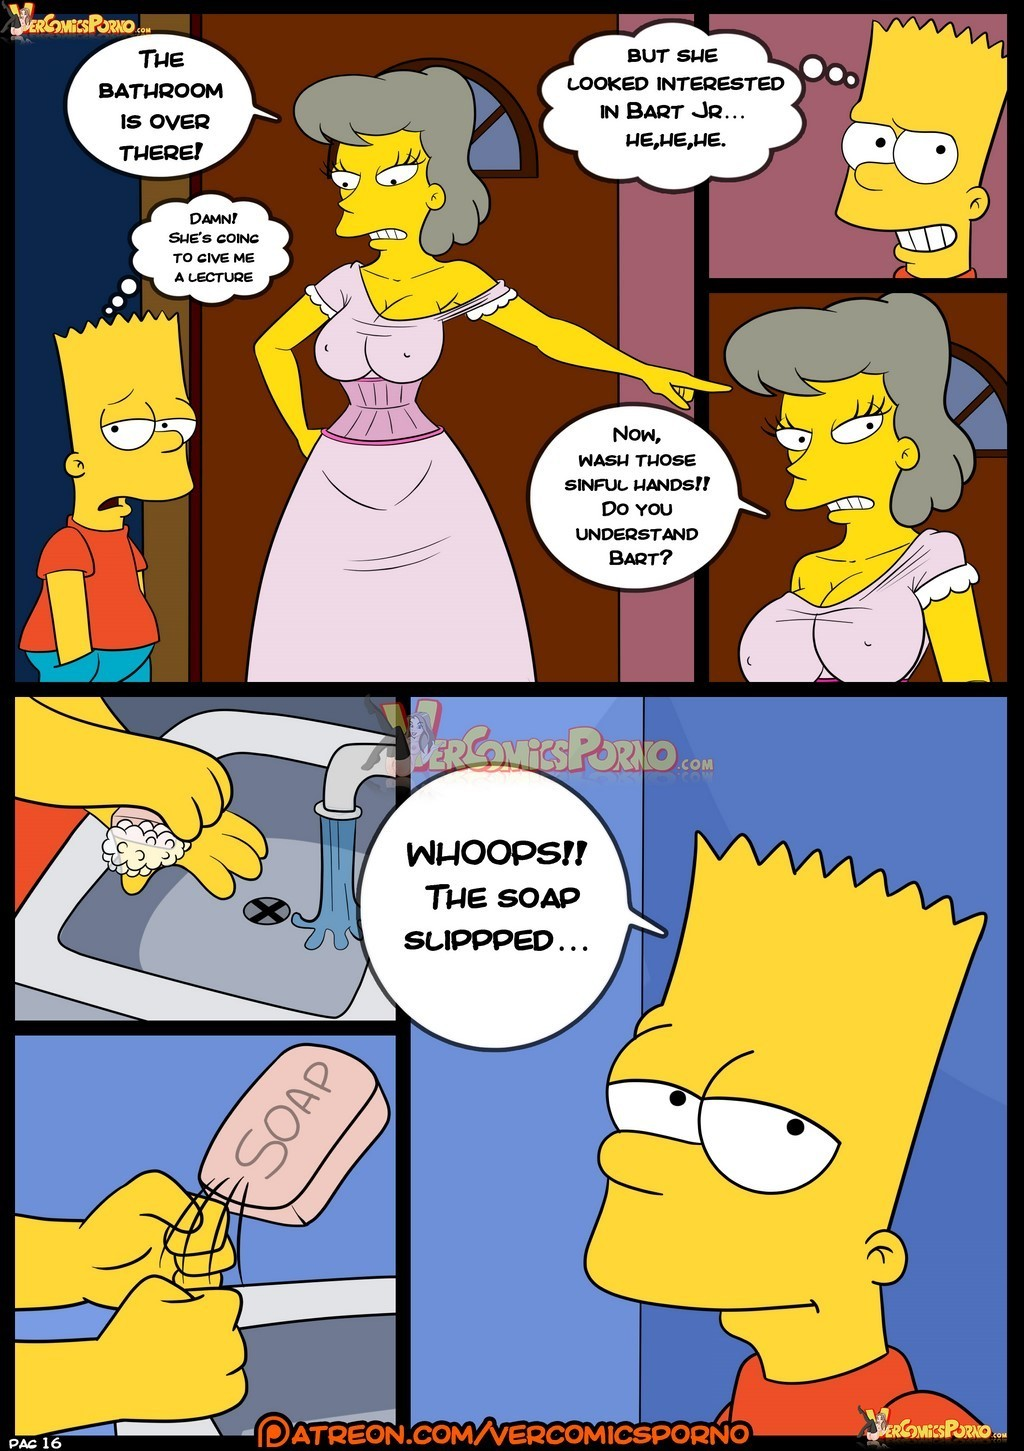 17 9 - The Simpsons. Part 8.